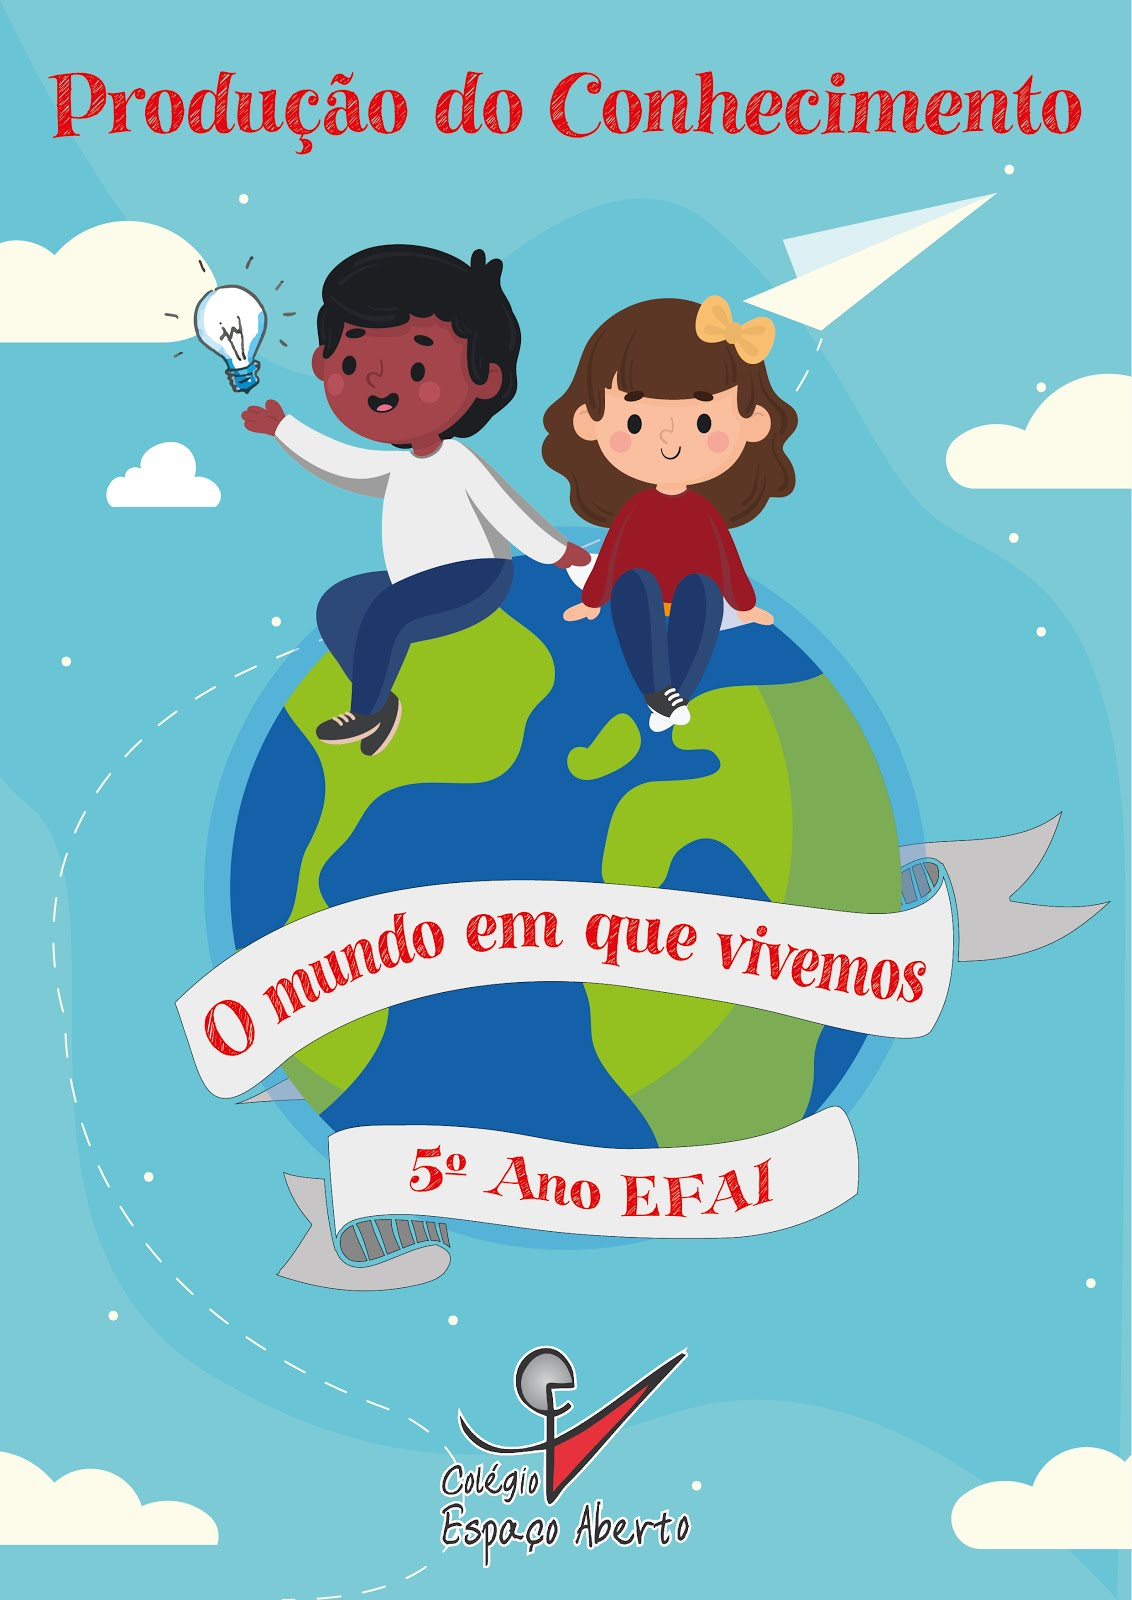 Manual da PC 2020 - 5º ano EF